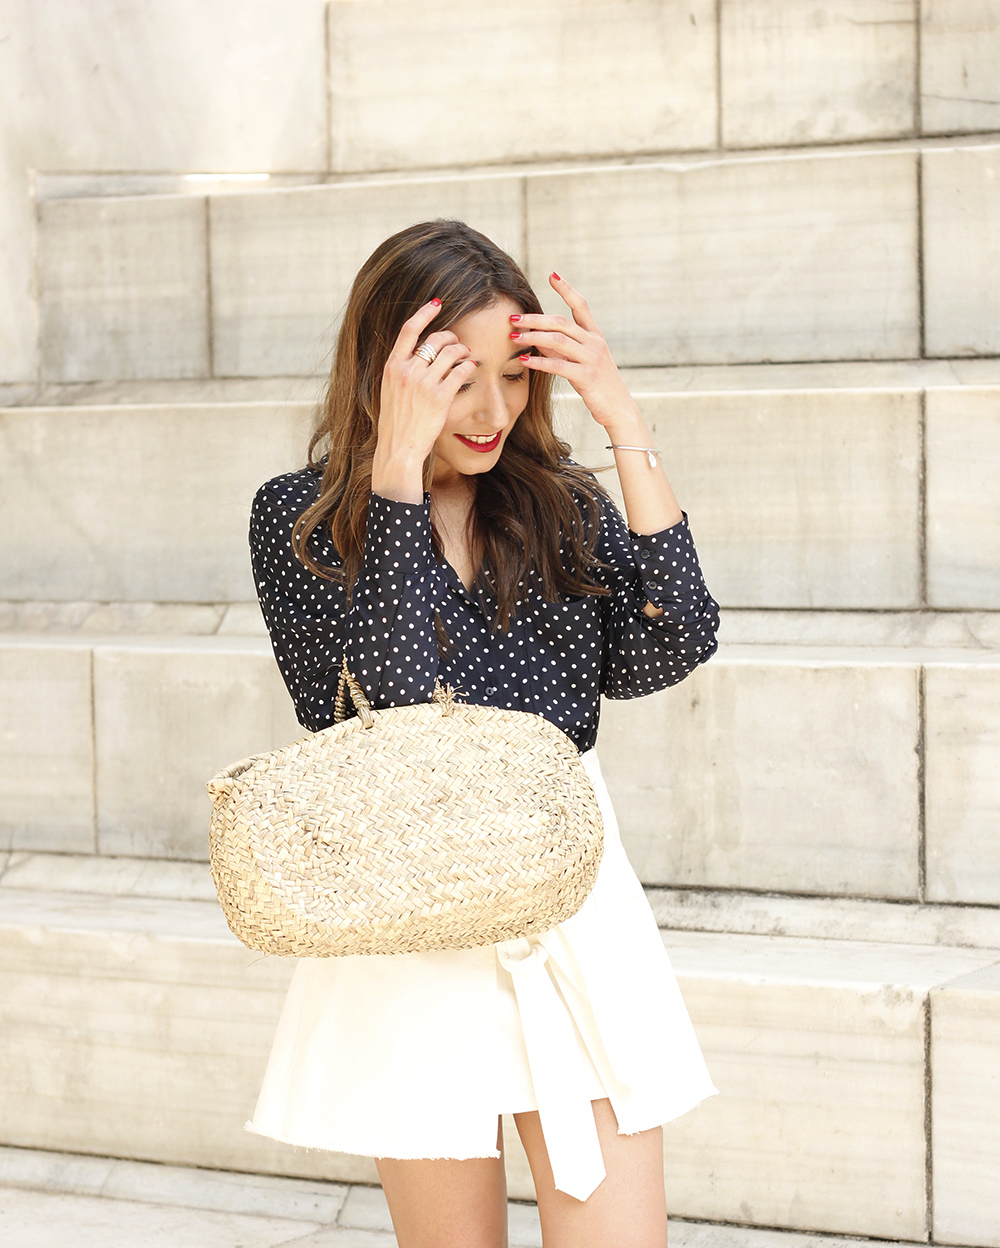 Polka dot shirt white denim skirt jewel flats wricked bag outfit style09